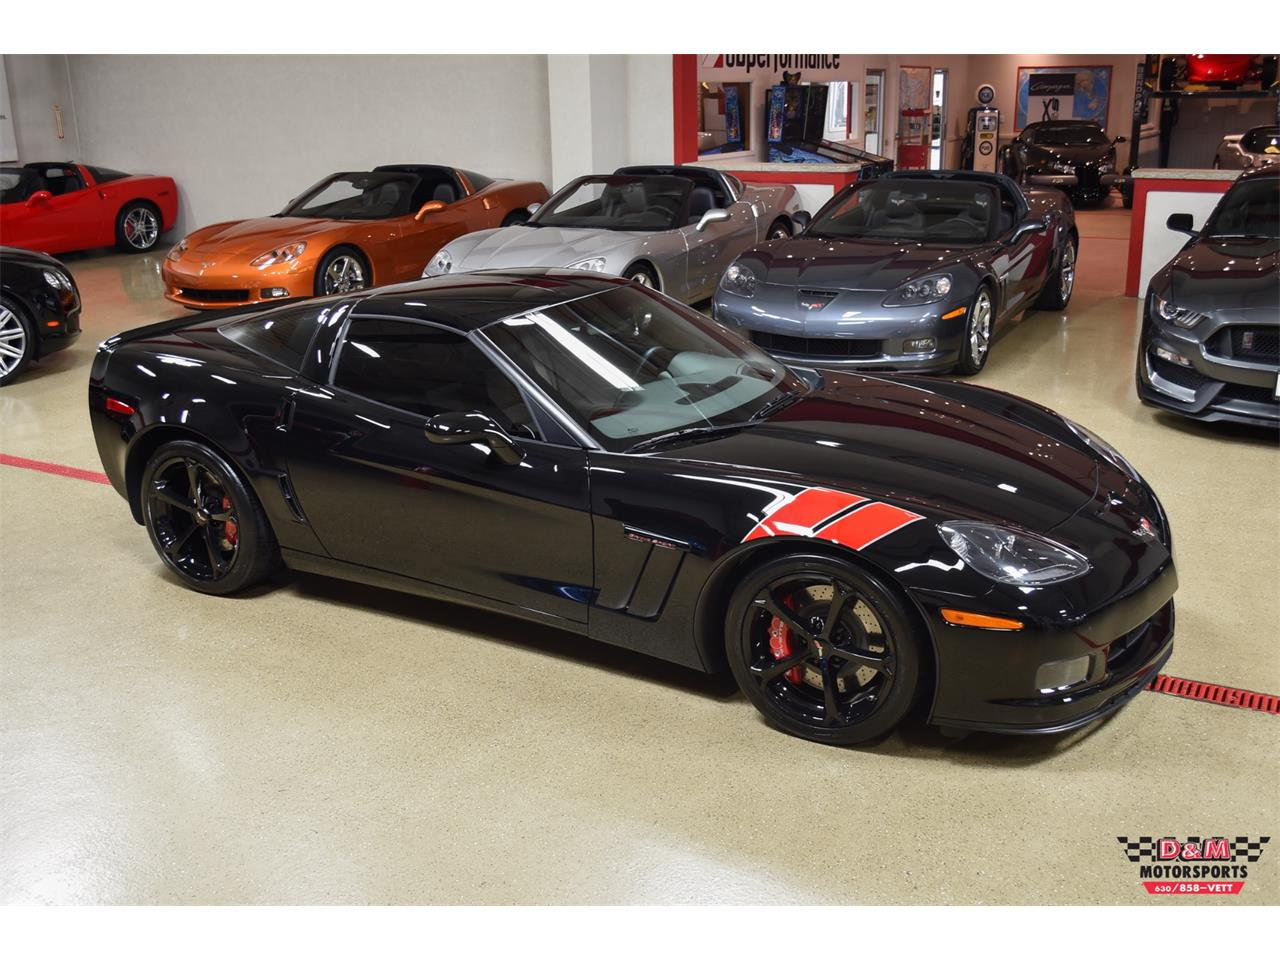 Large Picture of 2010 Chevrolet Corvette located in Illinois - $37,995.00 Offered by D & M Motorsports - PUJ0